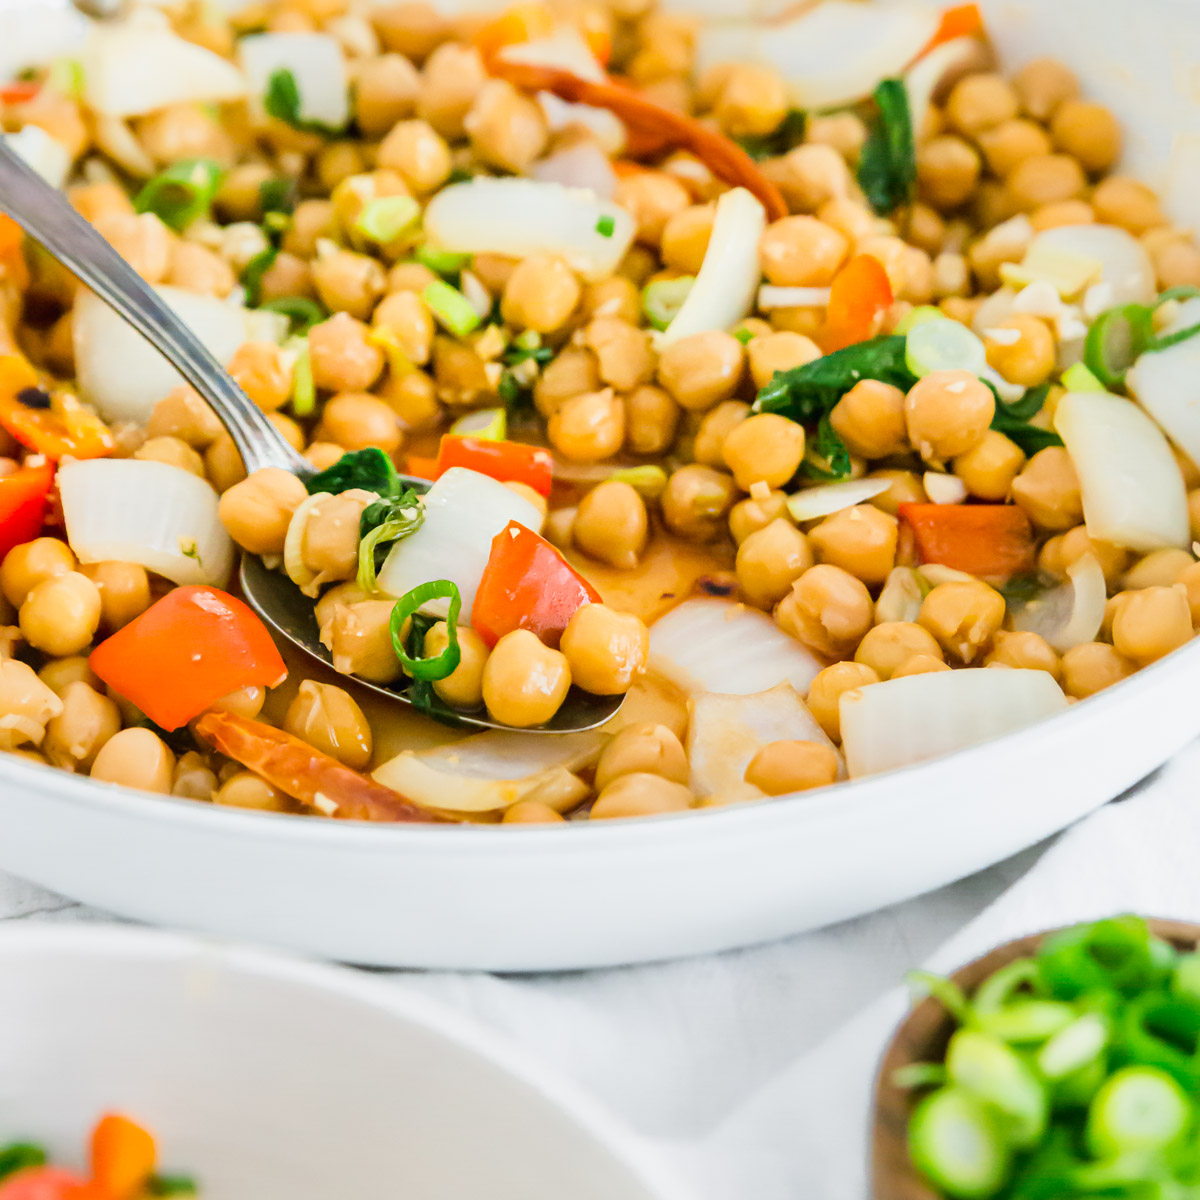 This chickpea version of the classic Kung Pao Chinese dish recreates the flavors perfectly with a healthier twist.